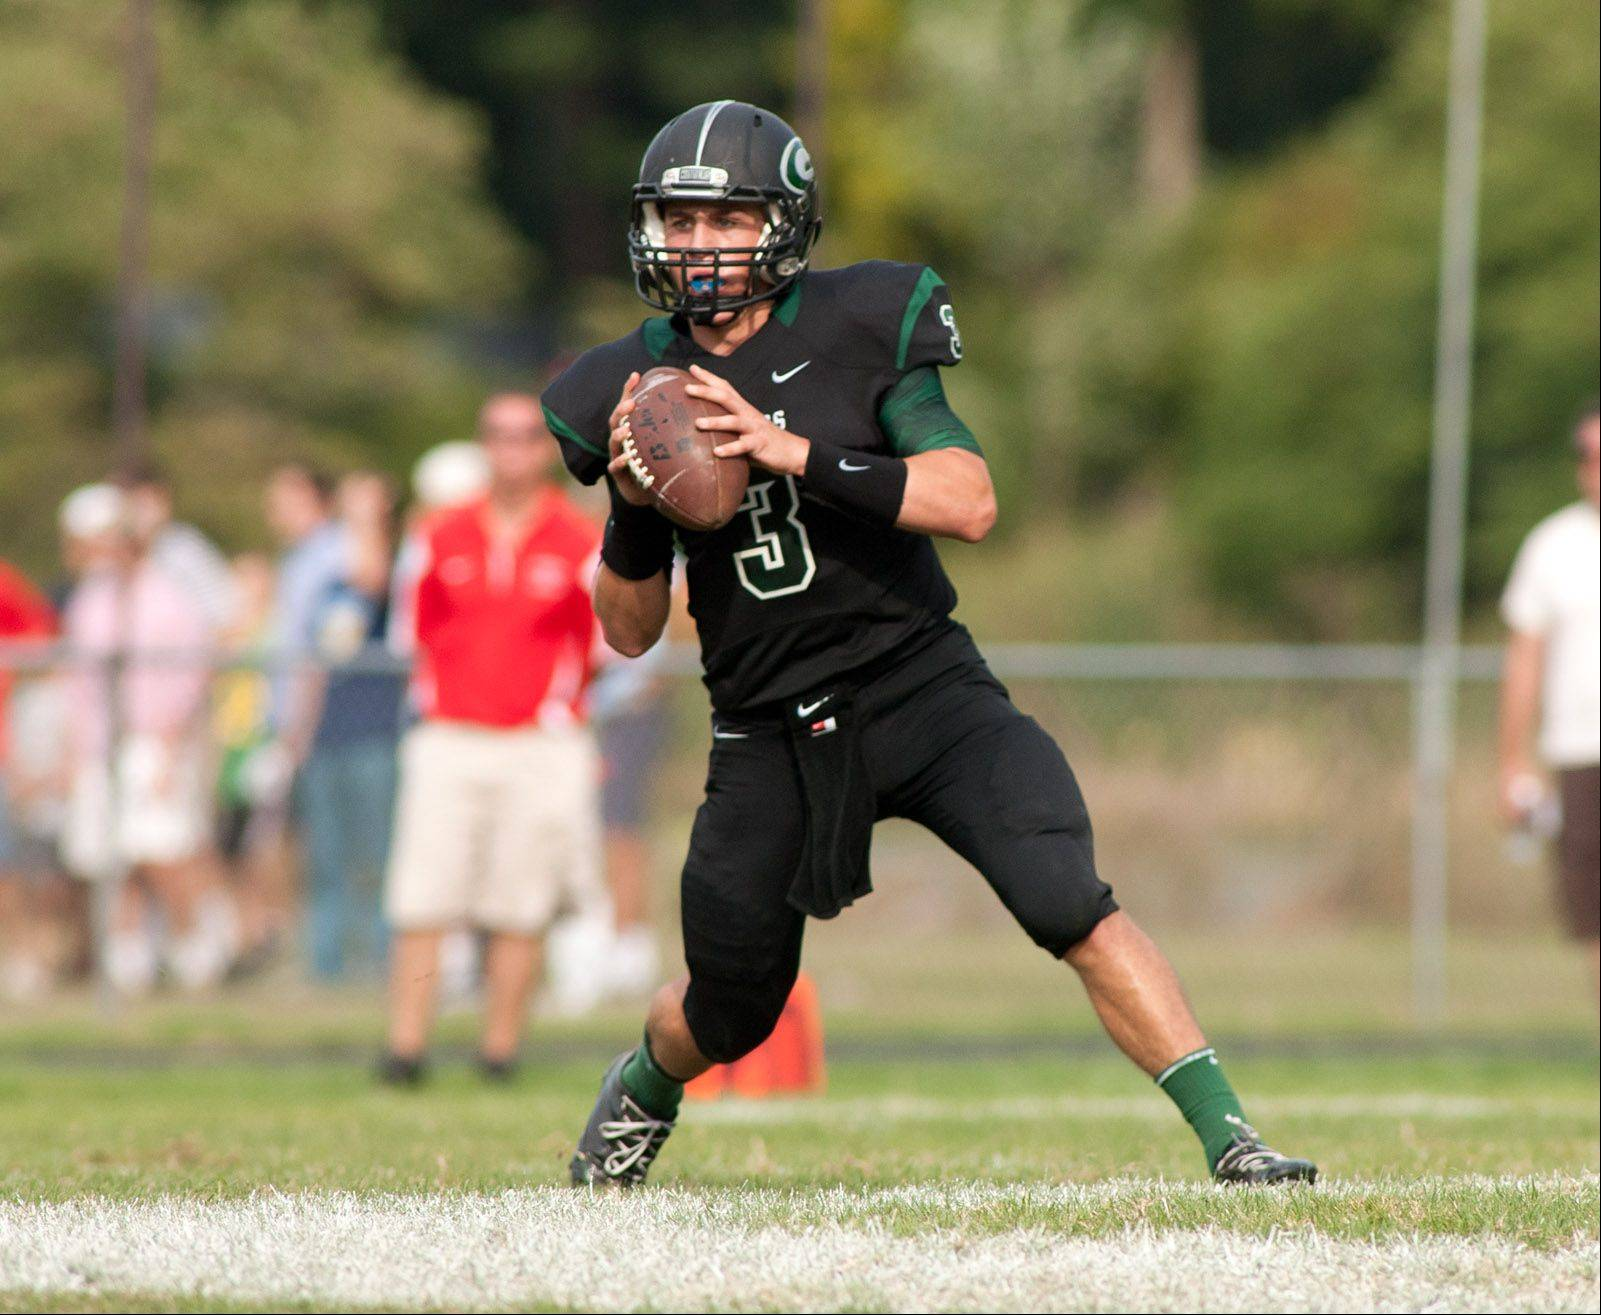 Week-5- Photos from the Hinsdale Central at Glenbard West football game on Saturday, September 28.